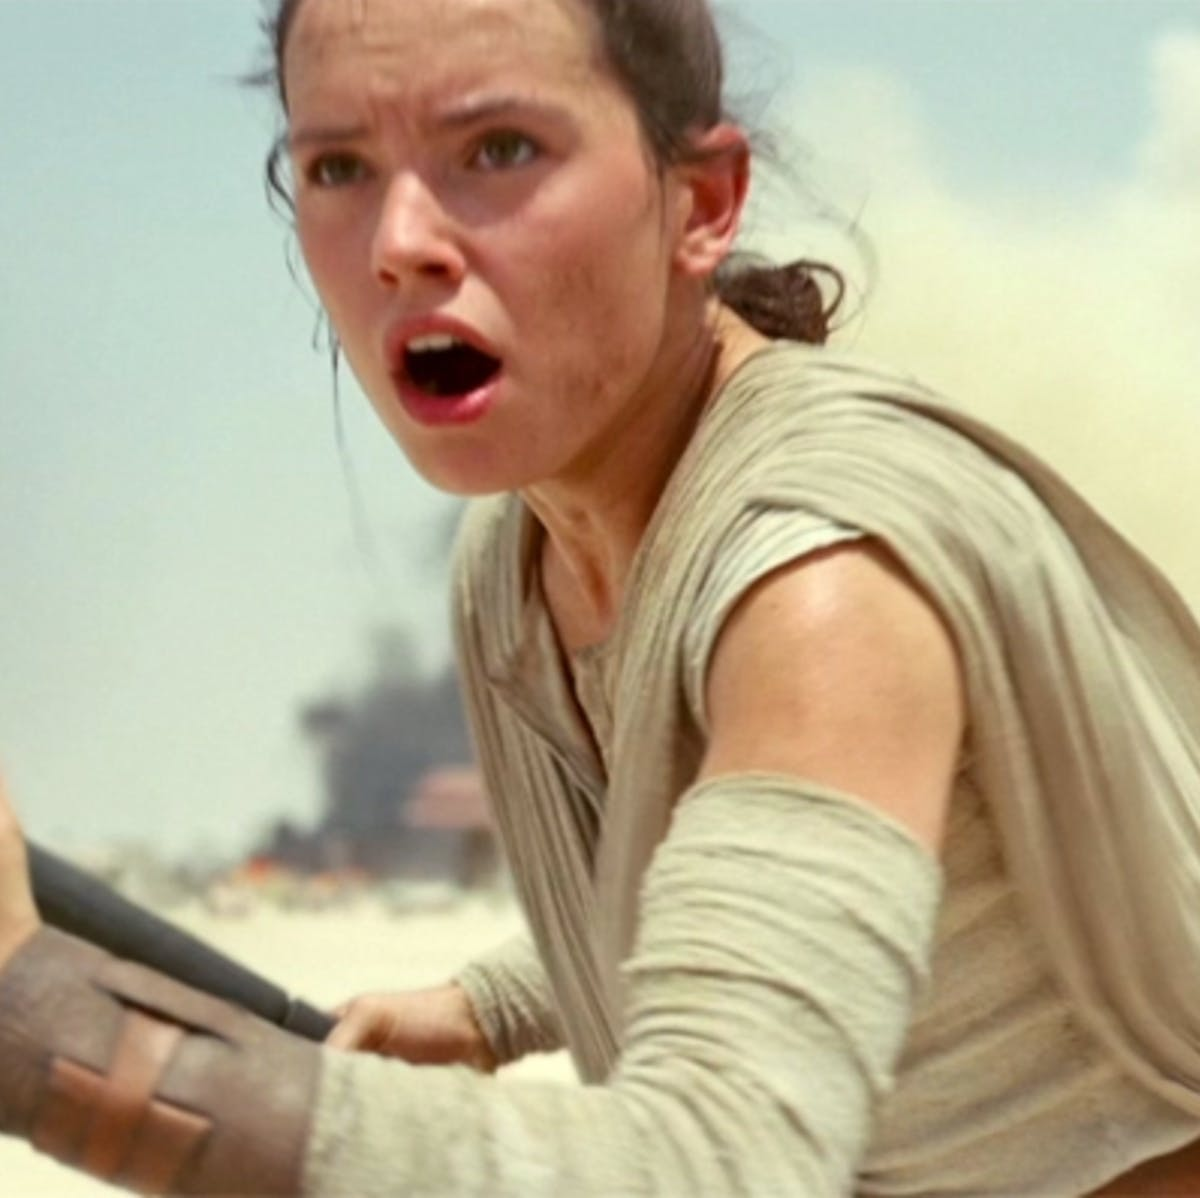 New 'Rise of Skywalker' clip teases the return of an unexpected character